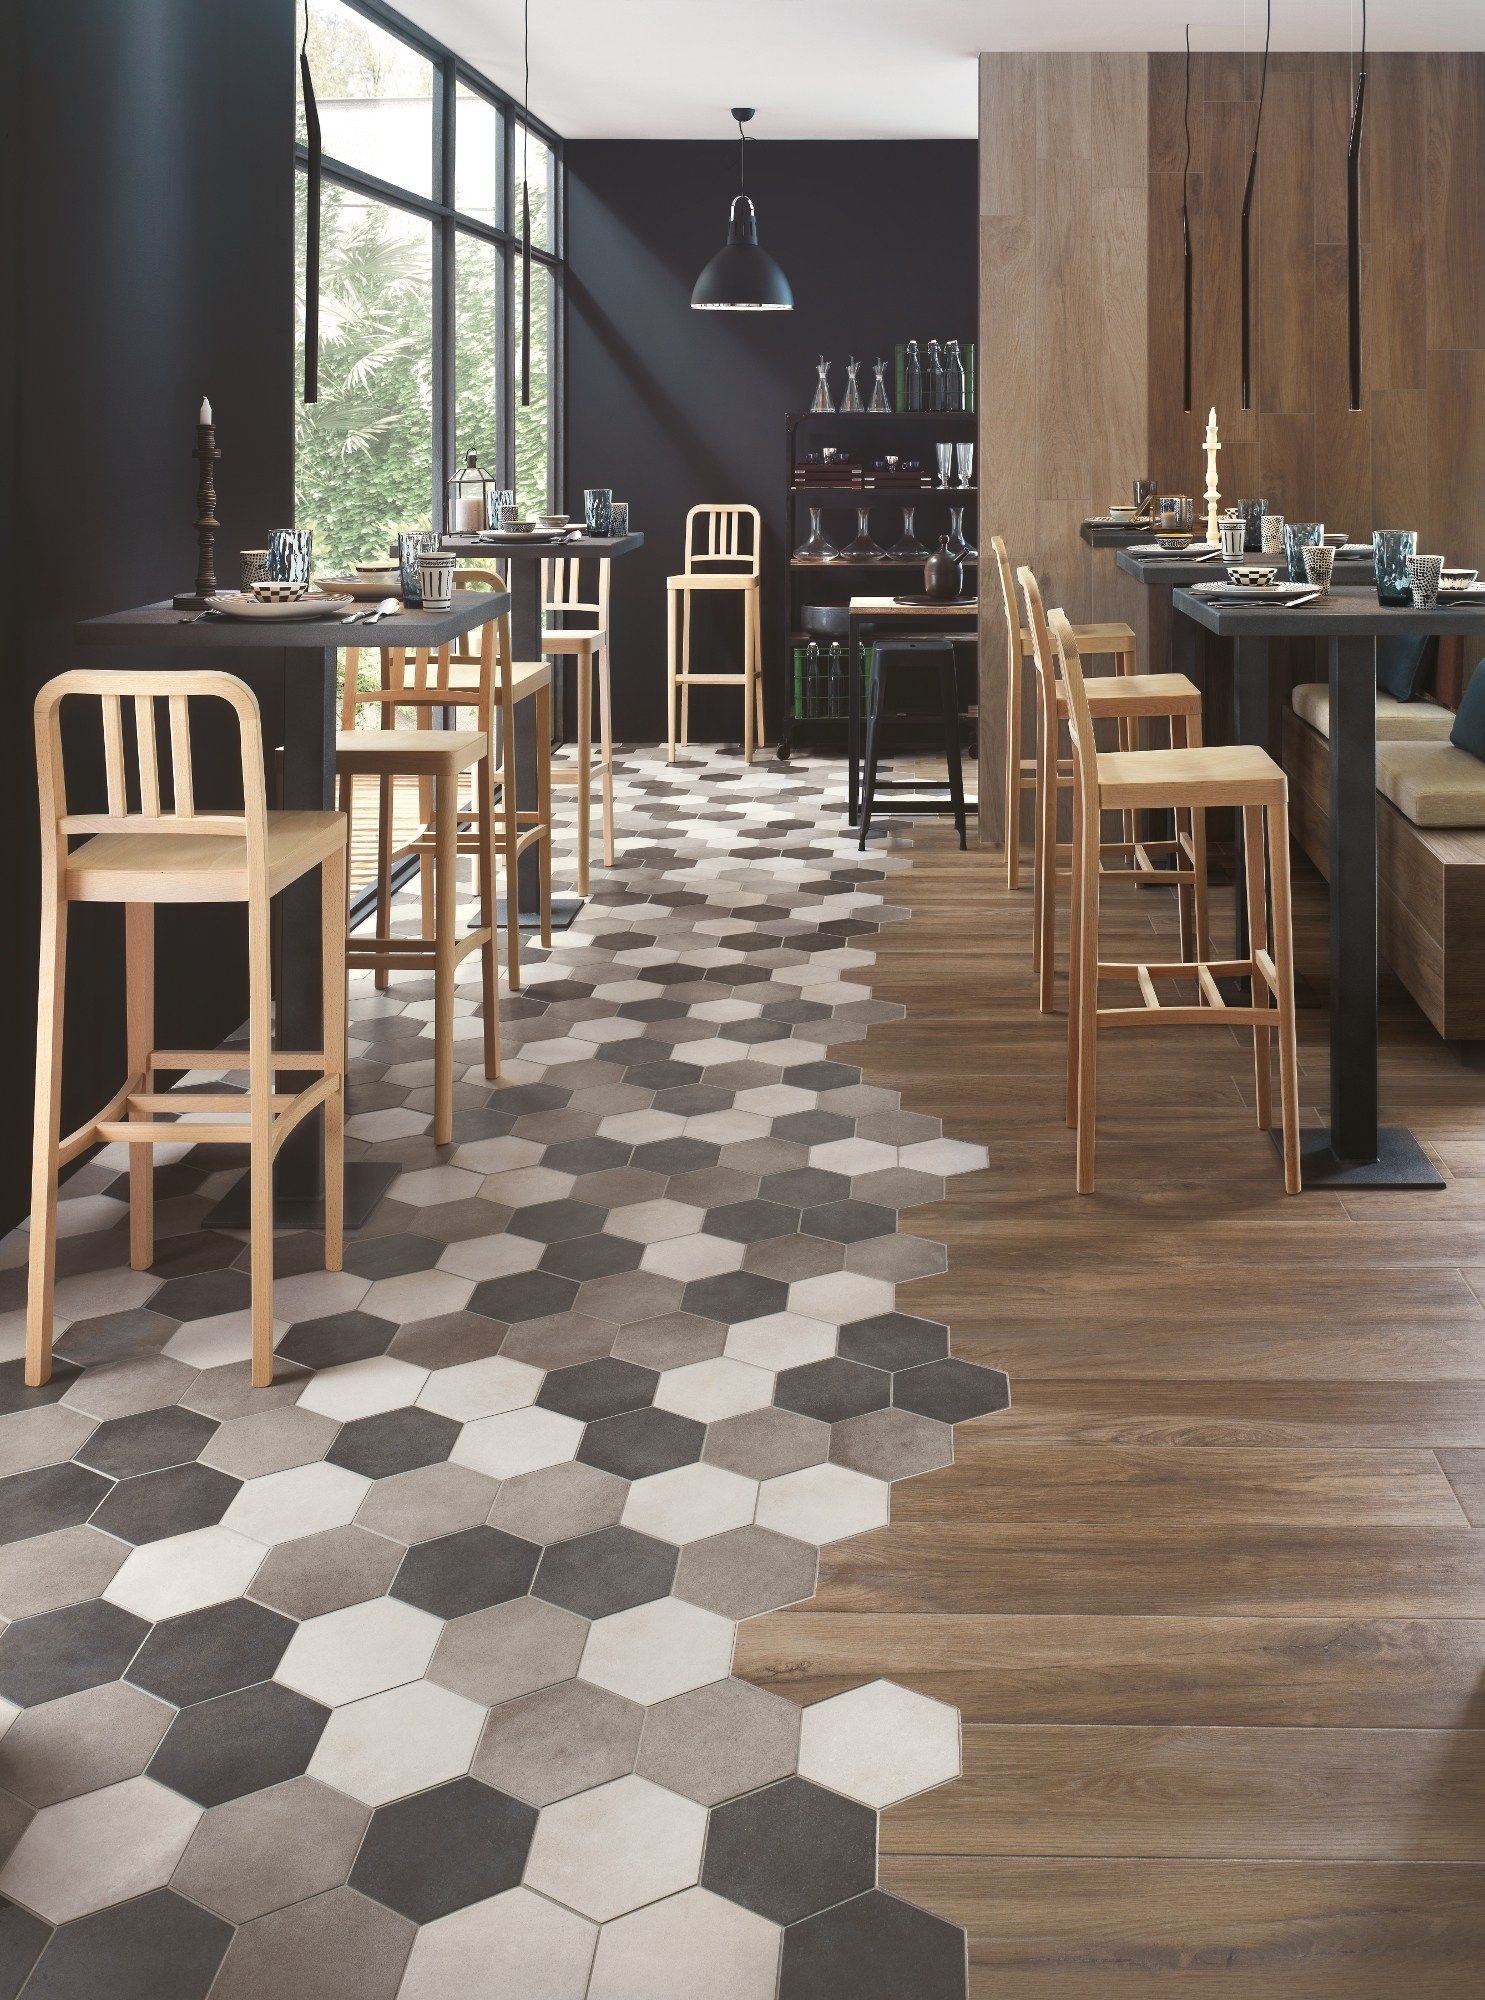 Hardwood Floor Transition Between Uneven Rooms Of Porcelain Stoneware Floor Tiles Woodplace by Ragno Marazzitile Intended for Prodotti 157208 Rel7652782749f343388aaa5509b65583d8 Hexagon Floor Tile Wood Floor Tiles Parquet Flooring